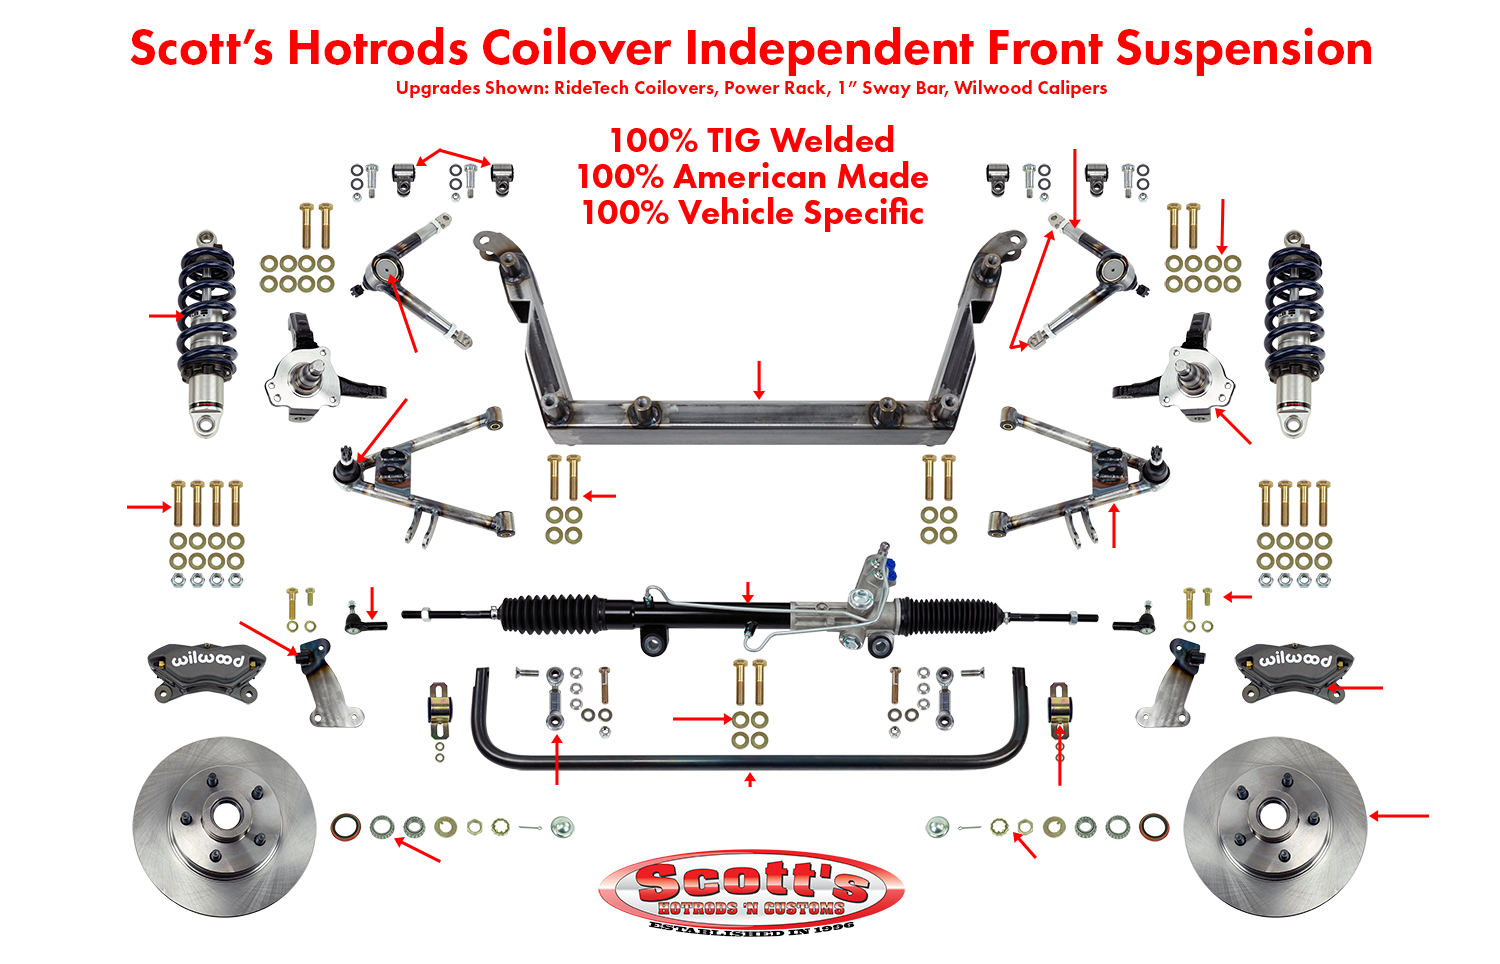 Scott's Hotrods Coilover Independent Front Suspension Kit Labels